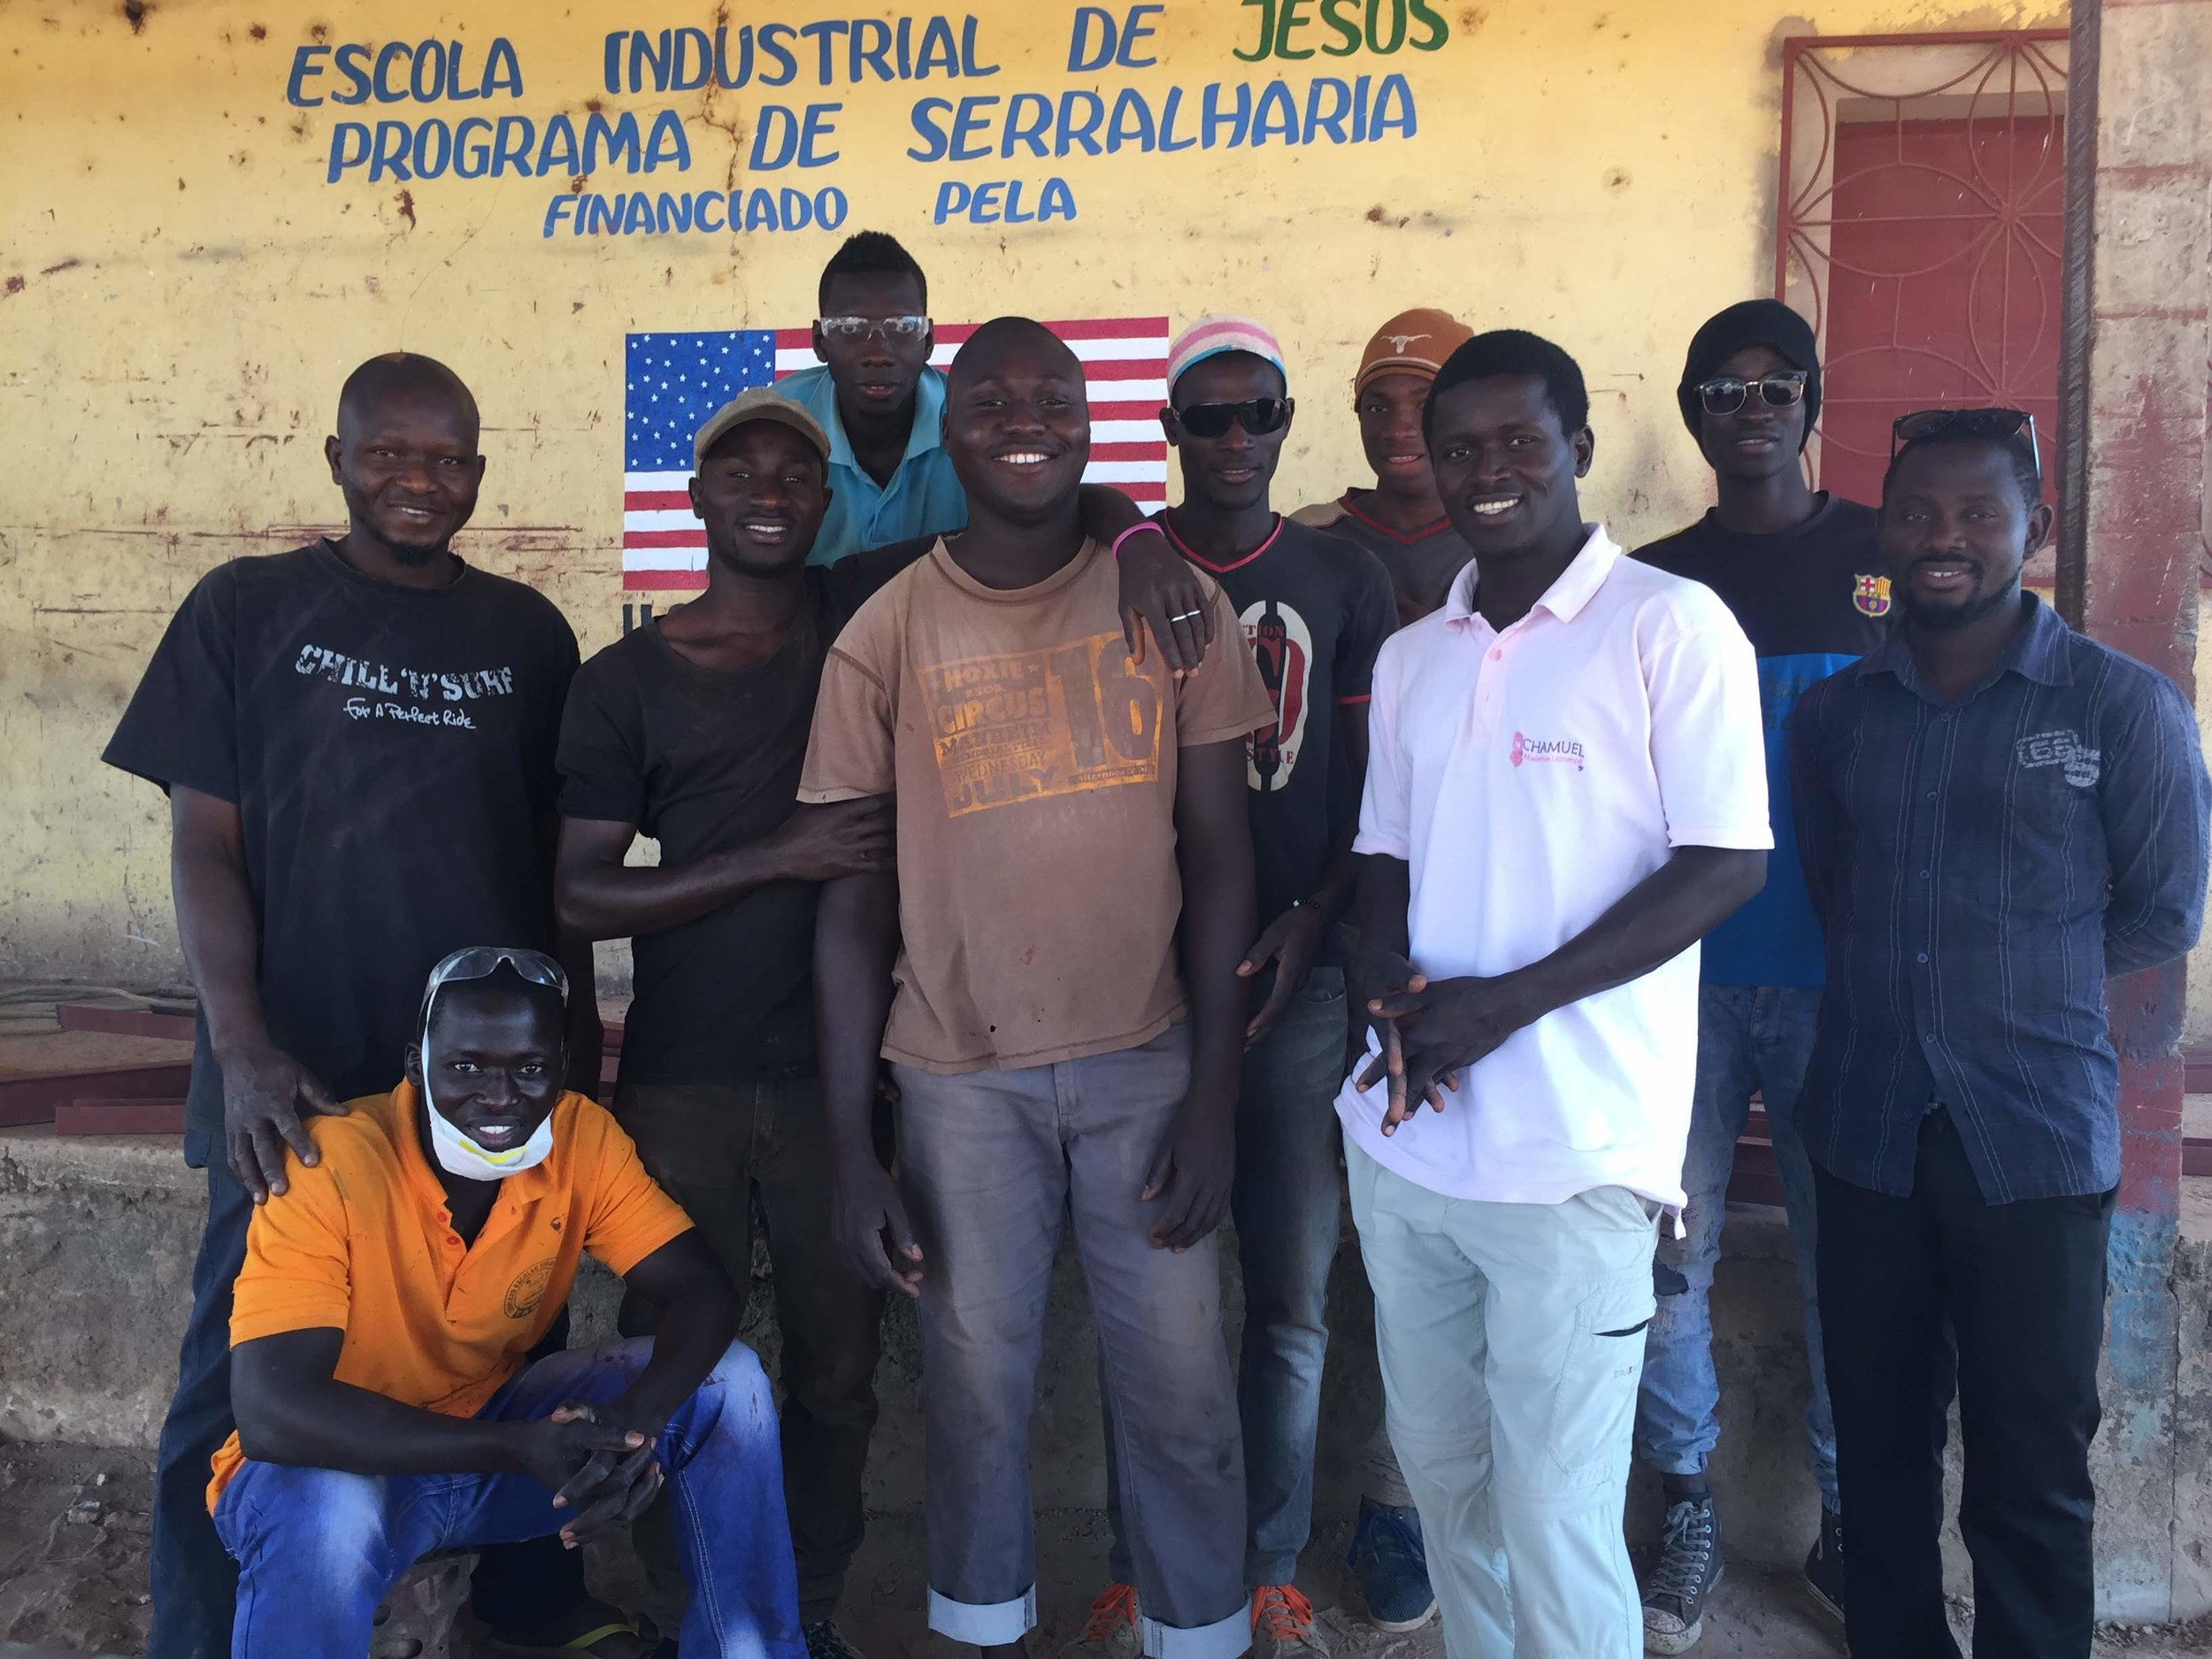 Sergio, standing at the far left, with his classmates at the WAVS Vocational School in Guinea-Bissau, West Africa.